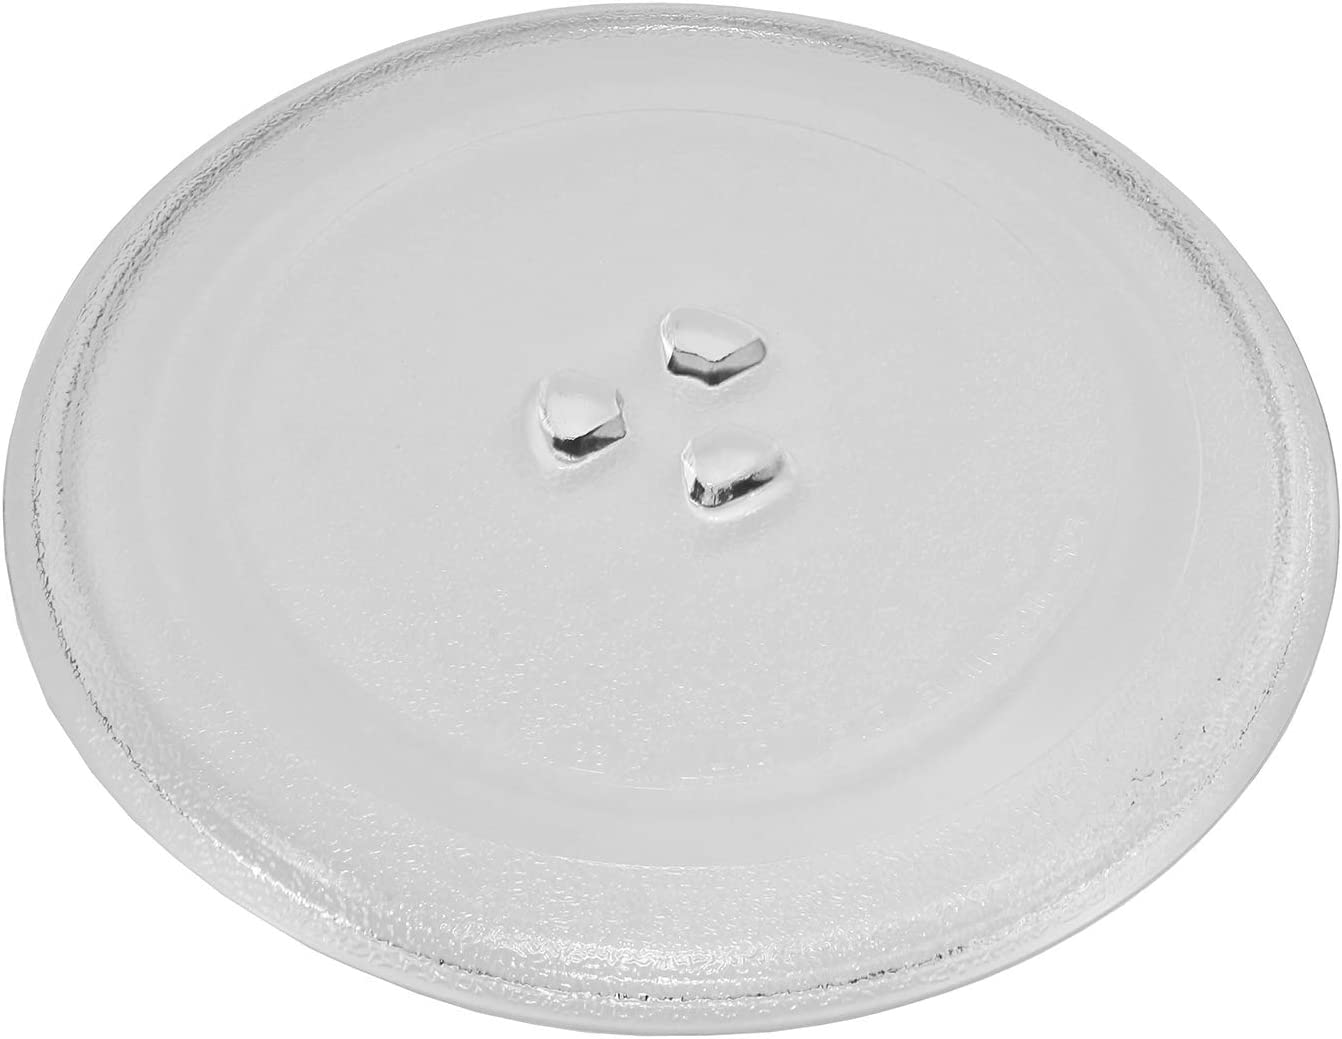 "Microwave Glass Turntable Plate 9.5"" or 245mm Designed to Fit Several Models: Home Improvement"